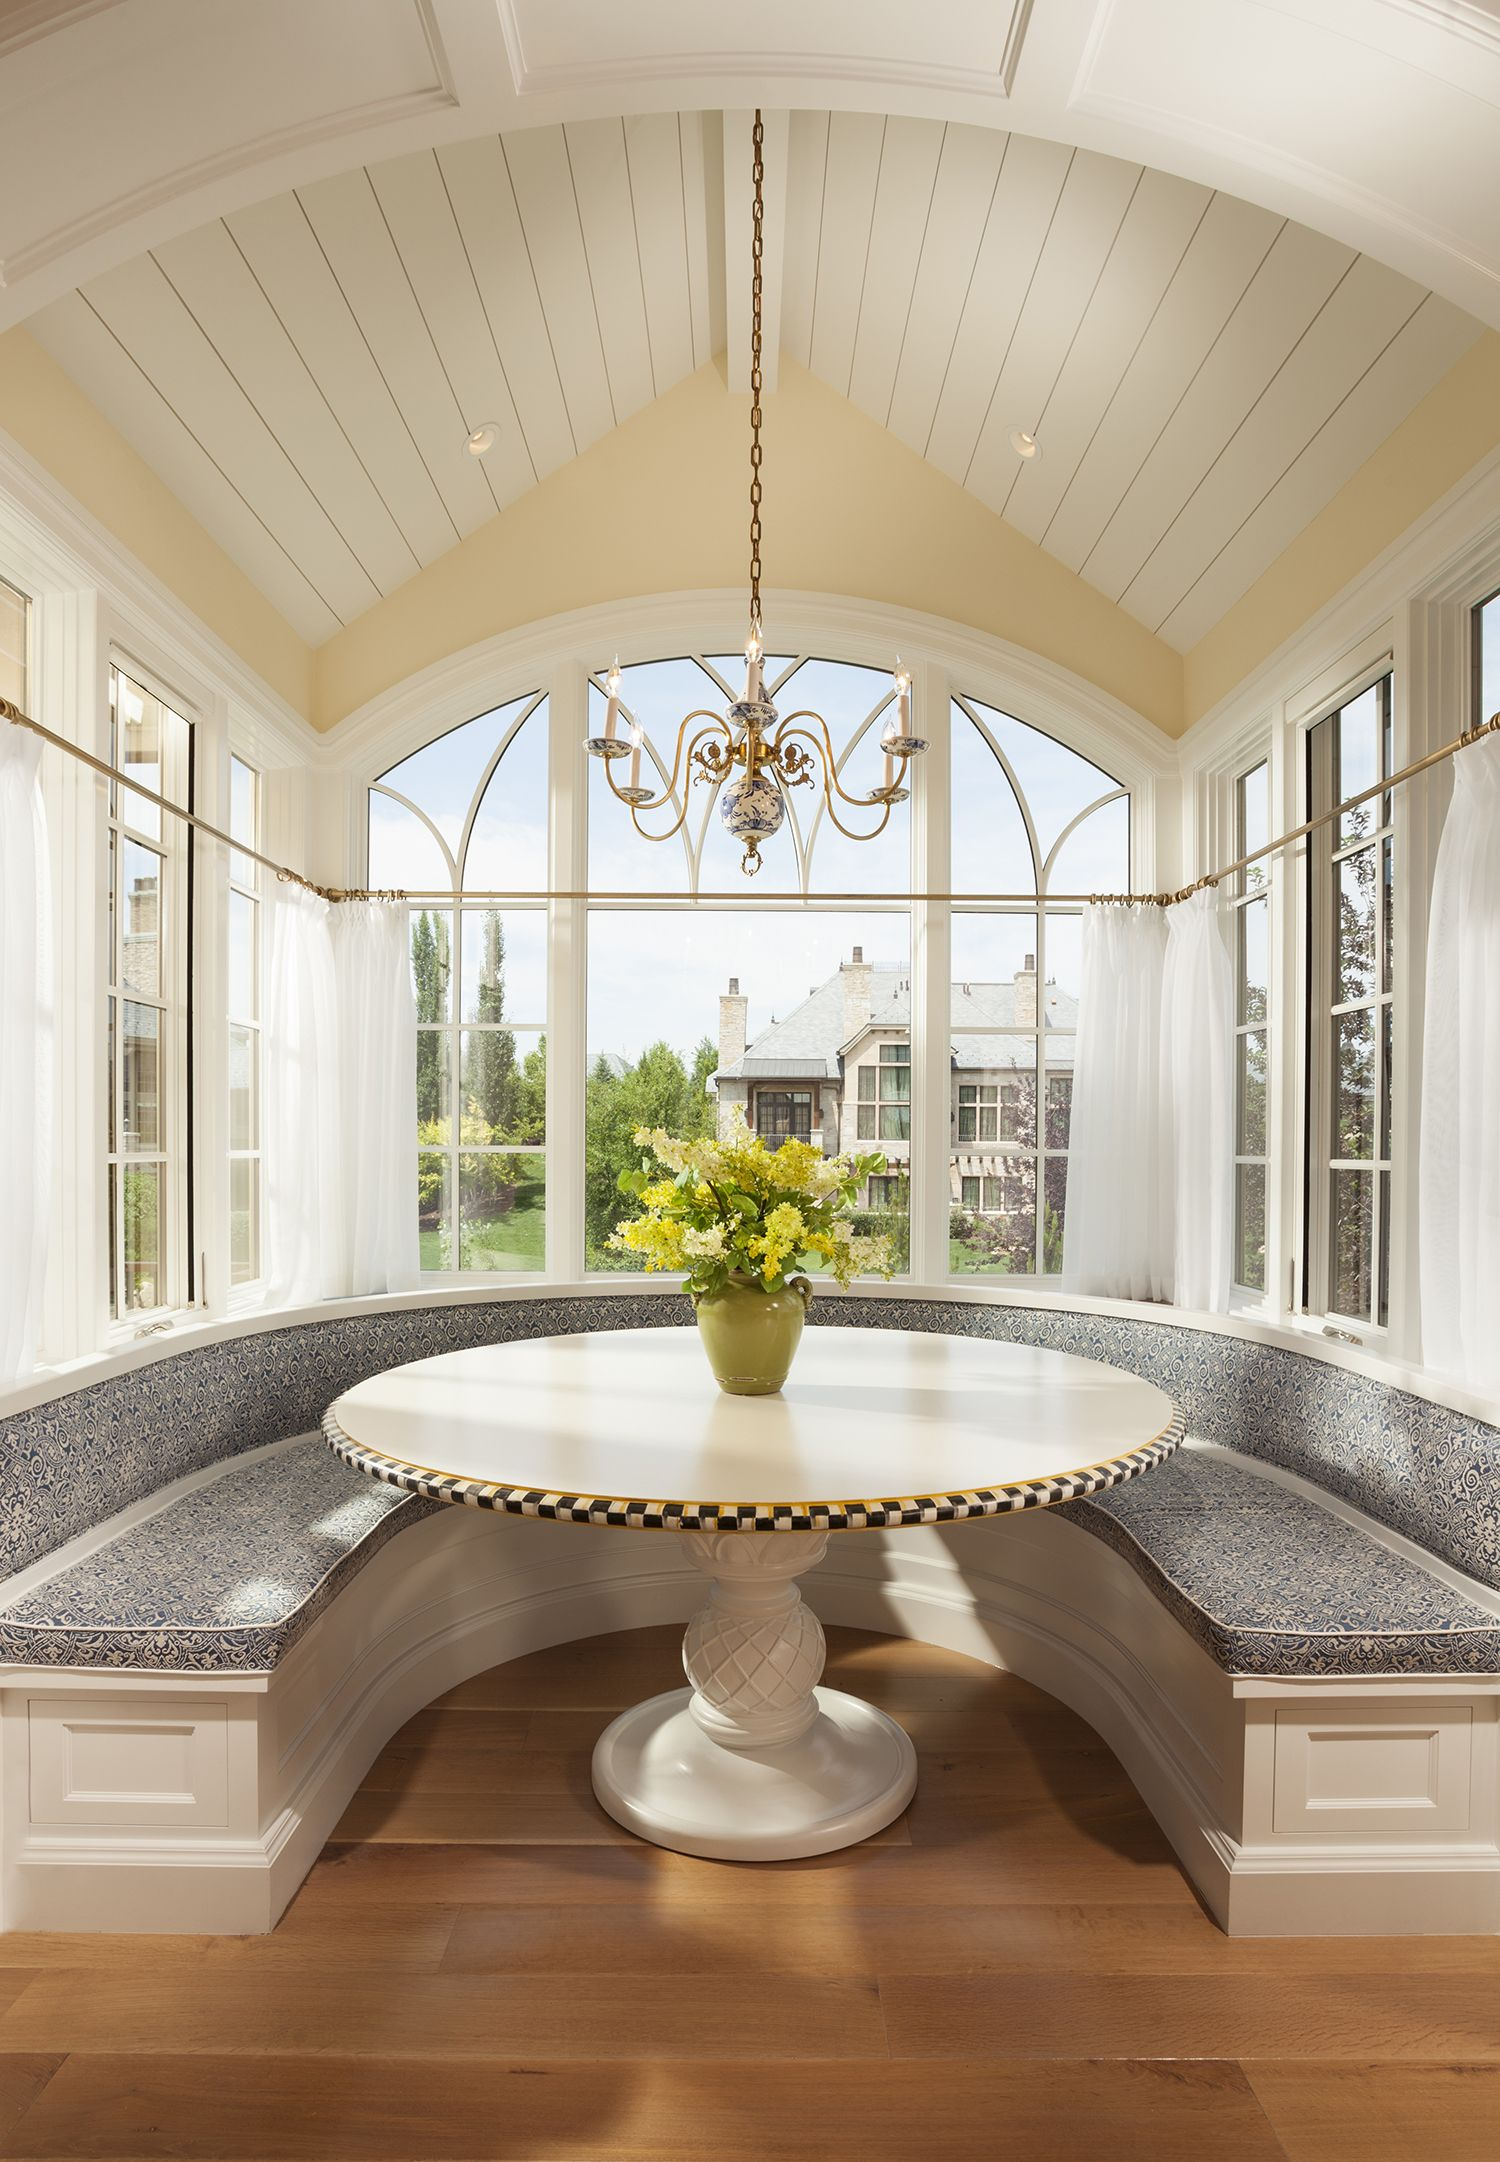 Window nook decorating ideas  weidman residence inkaec  country style custom homes